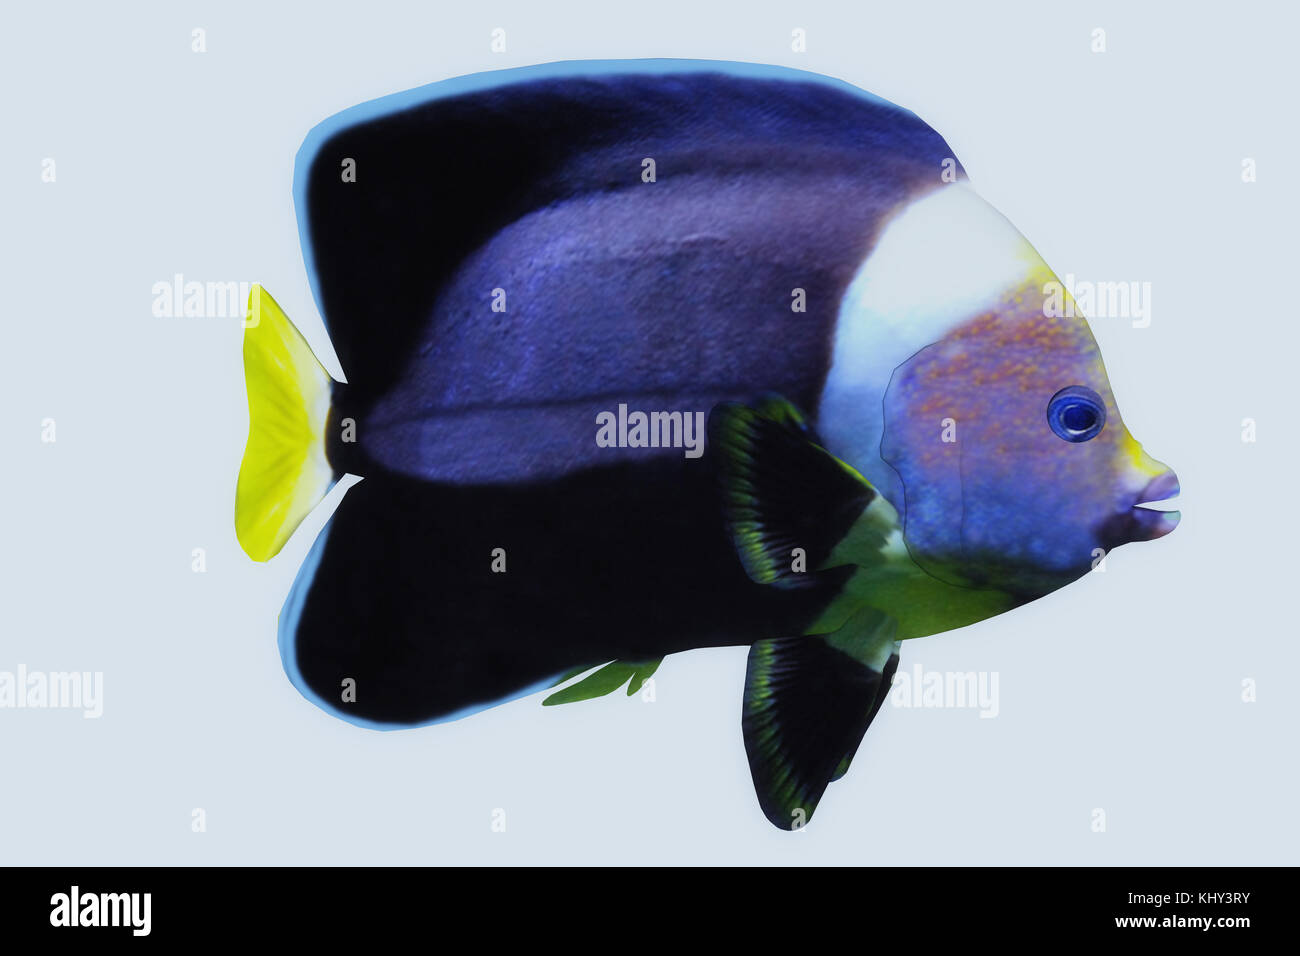 Black Velvet Angelfish - The Black Velvet Angelfish is a saltwater species reef fish in tropical regions of major - Stock Image